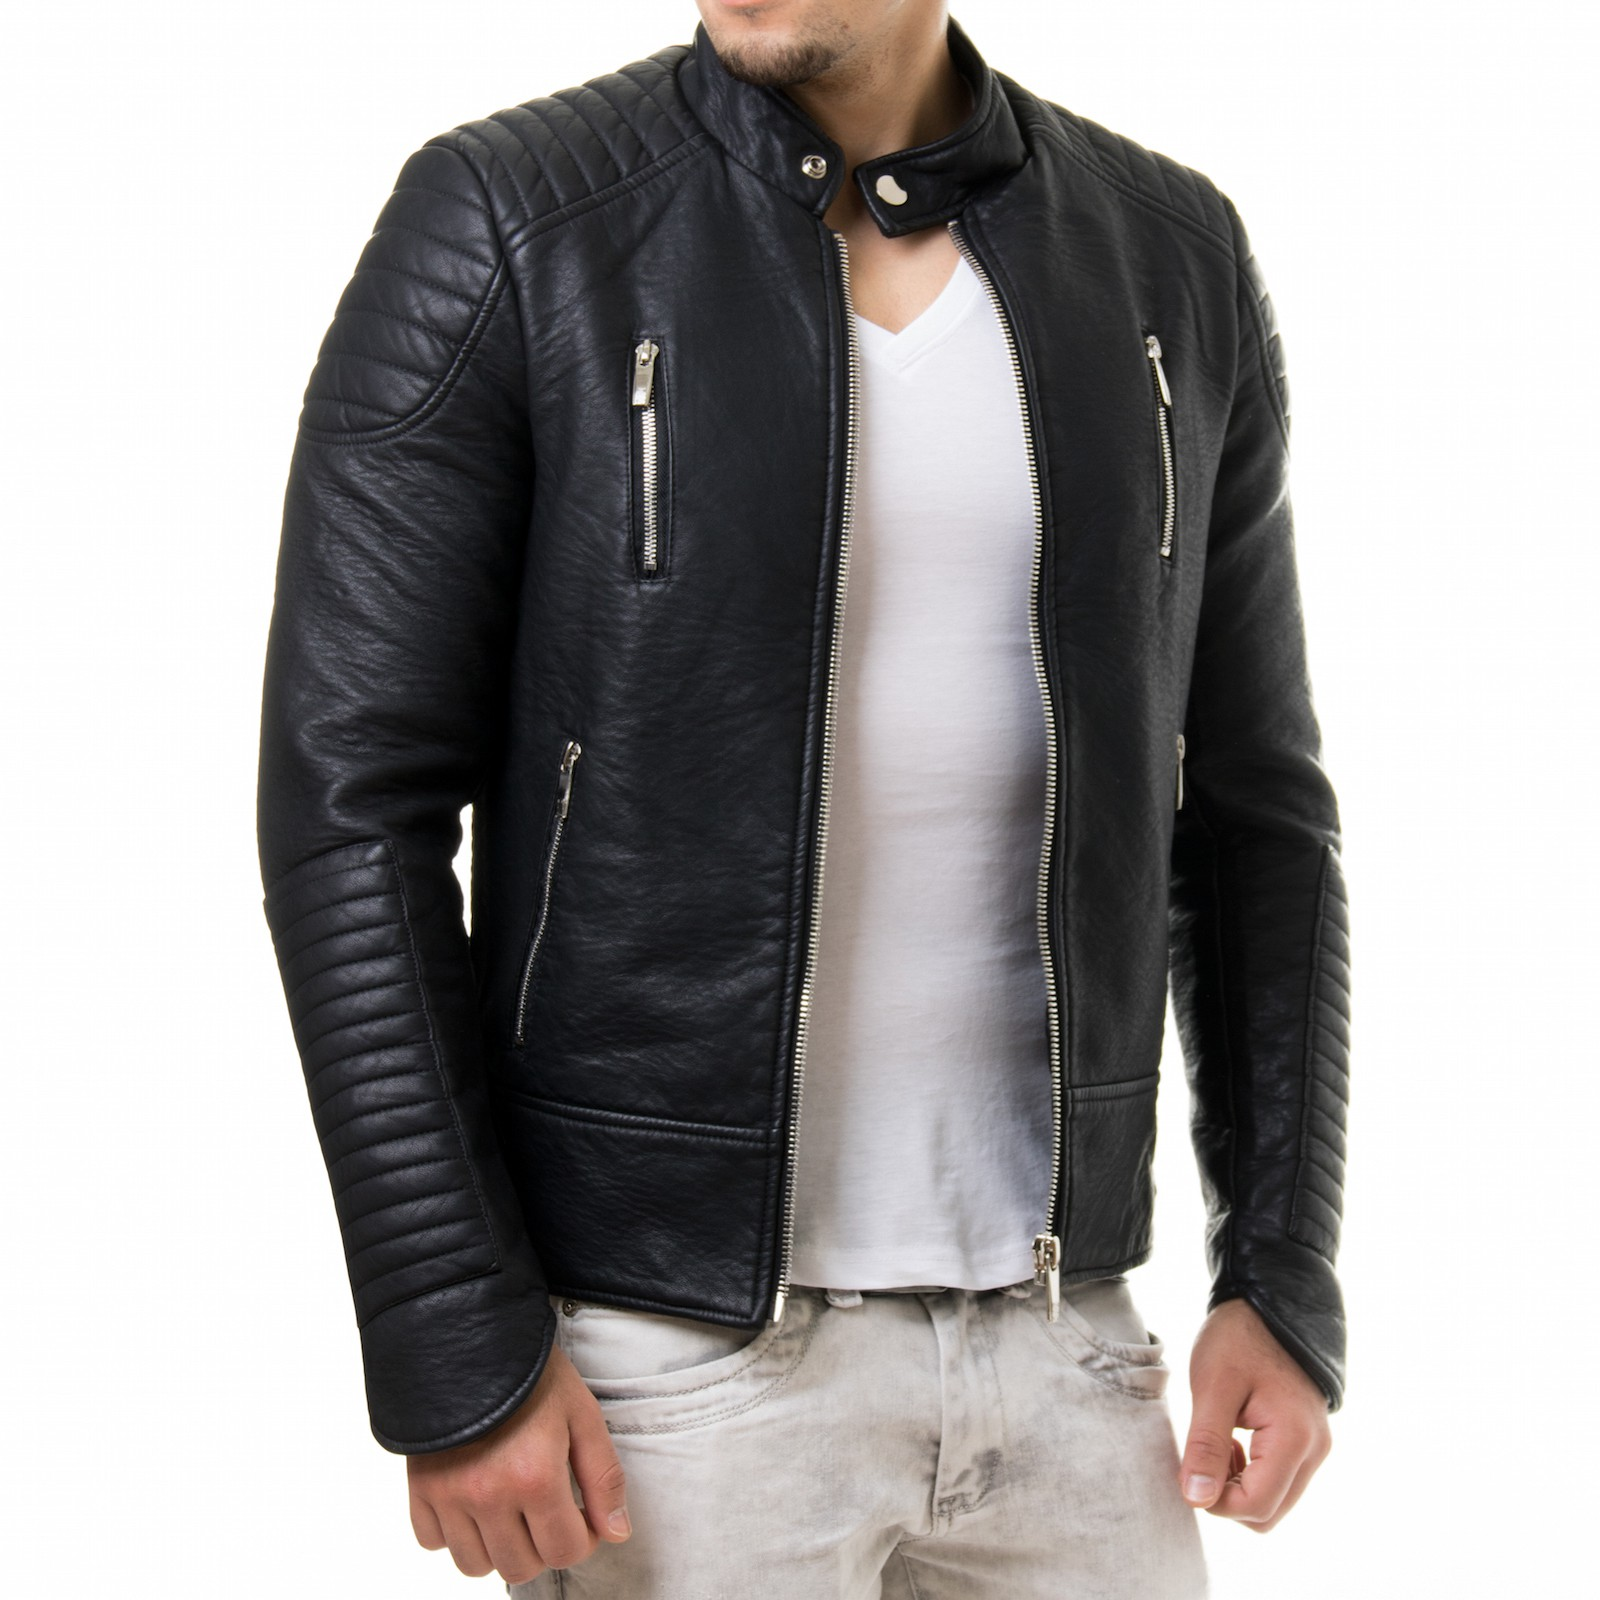 prestige homme 19 biker jacke gesteppt slim fit pu kunst. Black Bedroom Furniture Sets. Home Design Ideas